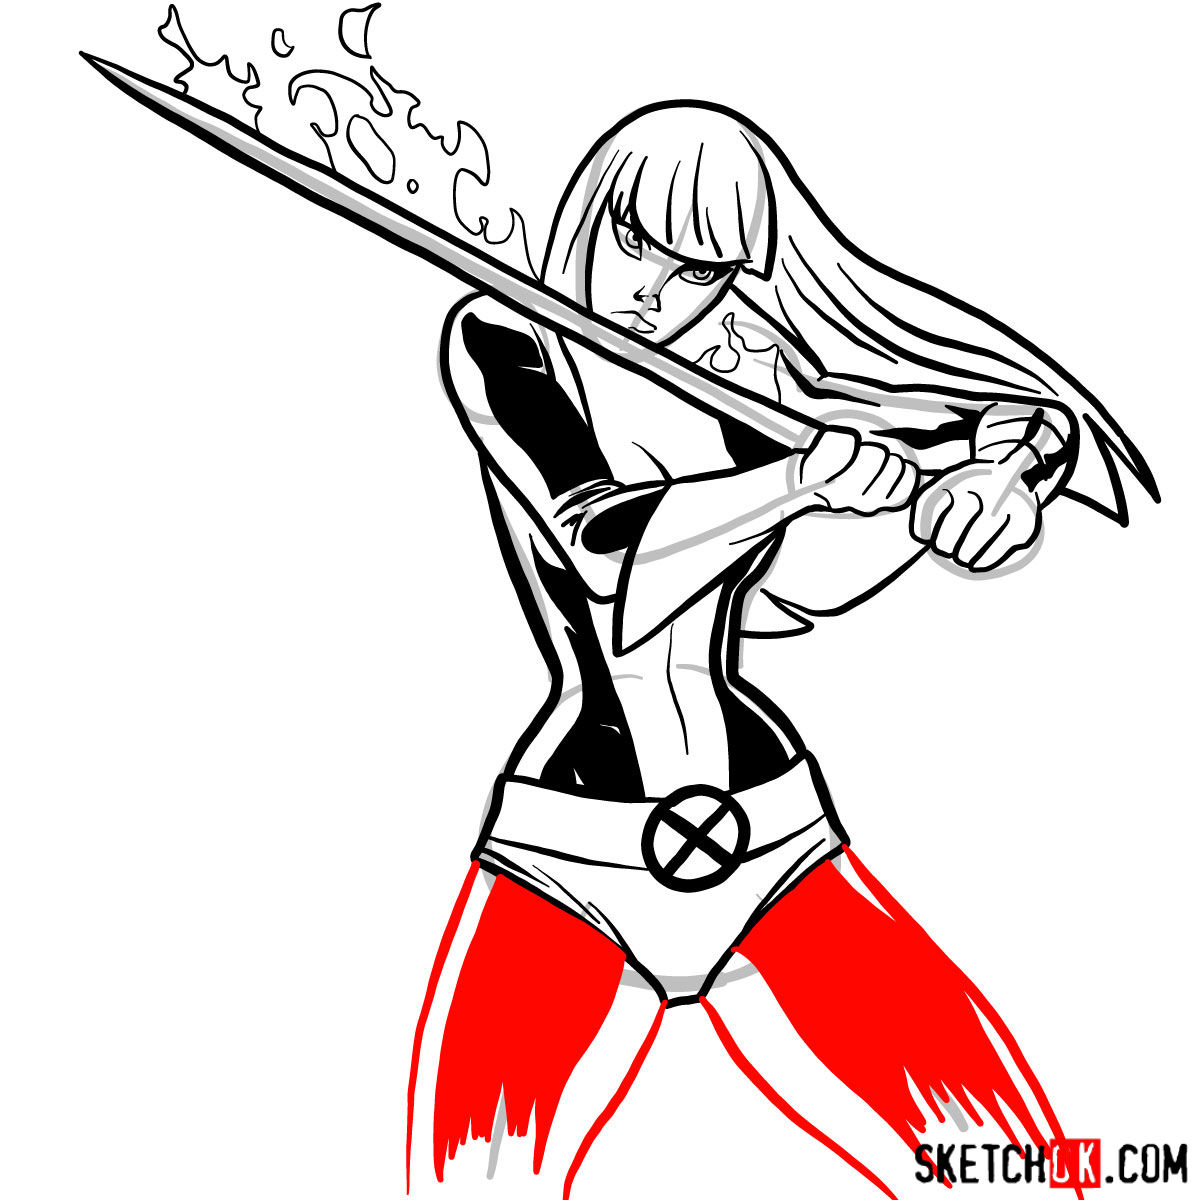 How to draw Magik, a mutant from X-Men - step 11